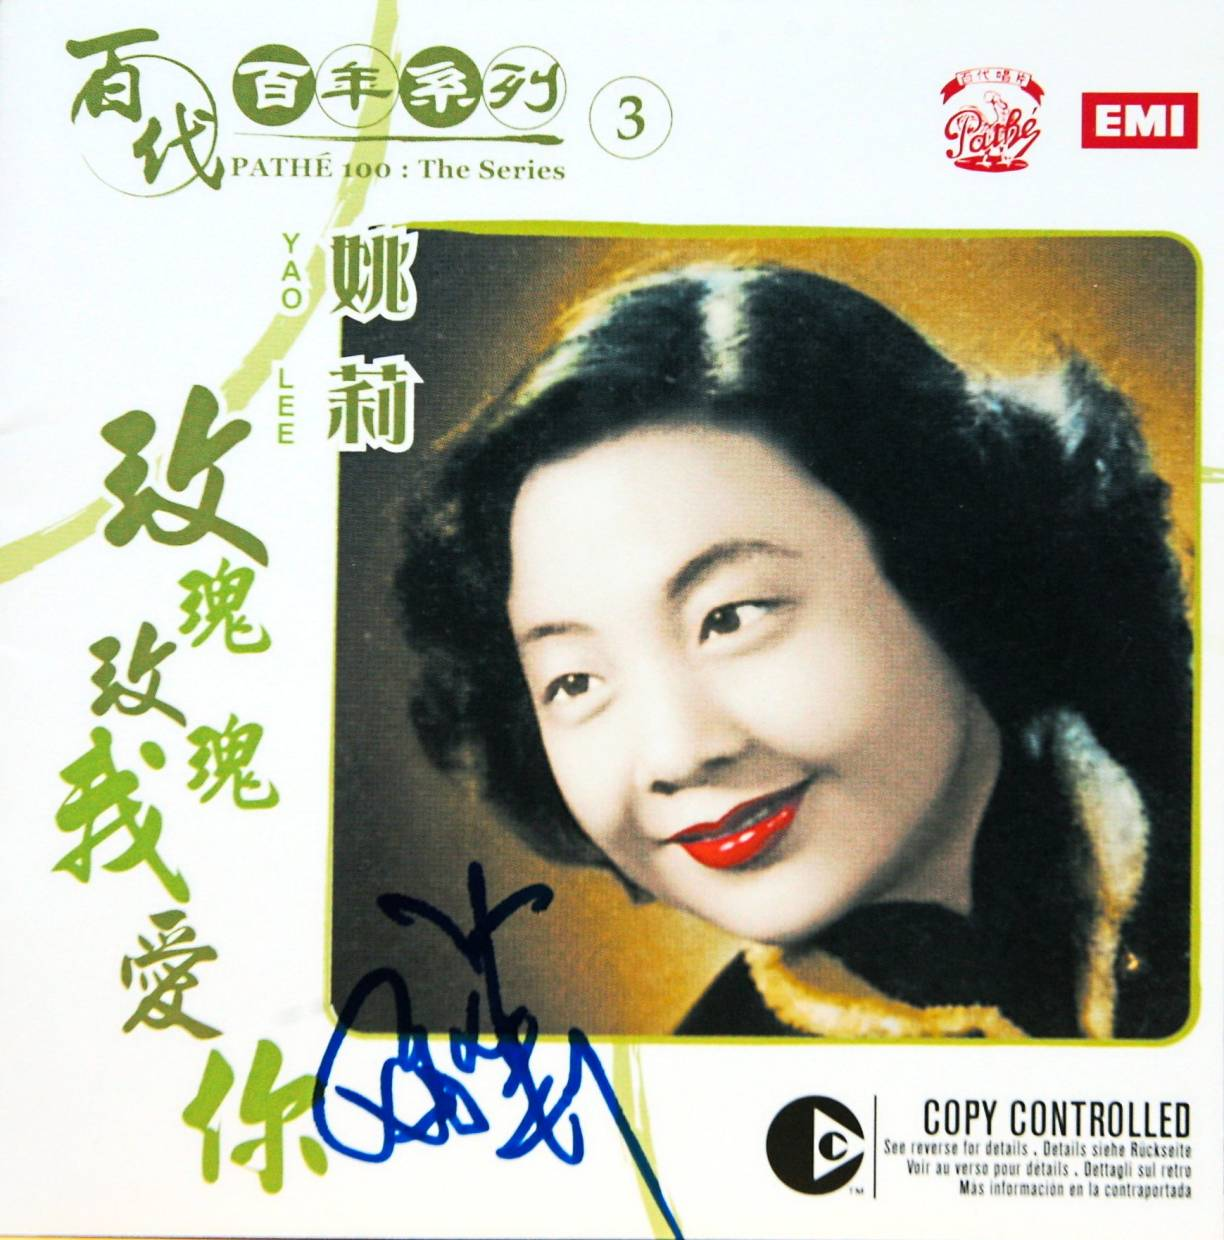 Yao Lee's classic Shanghai-era tunes will be a big part of the tribute concert.